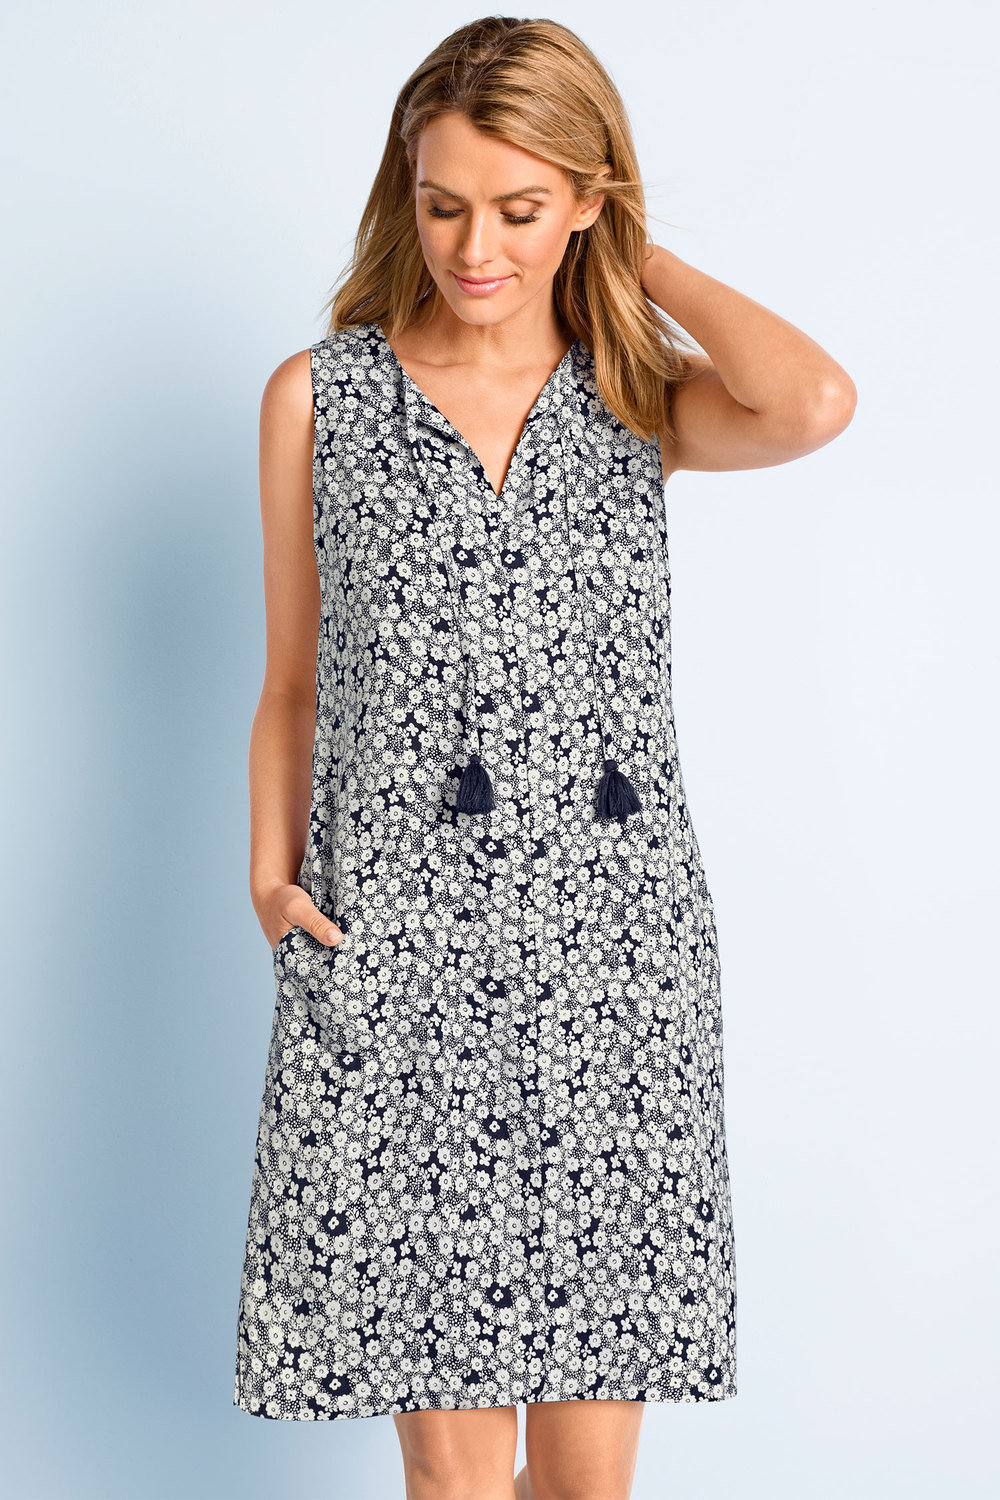 aac789e303a Capture Linen Shift Dress Online